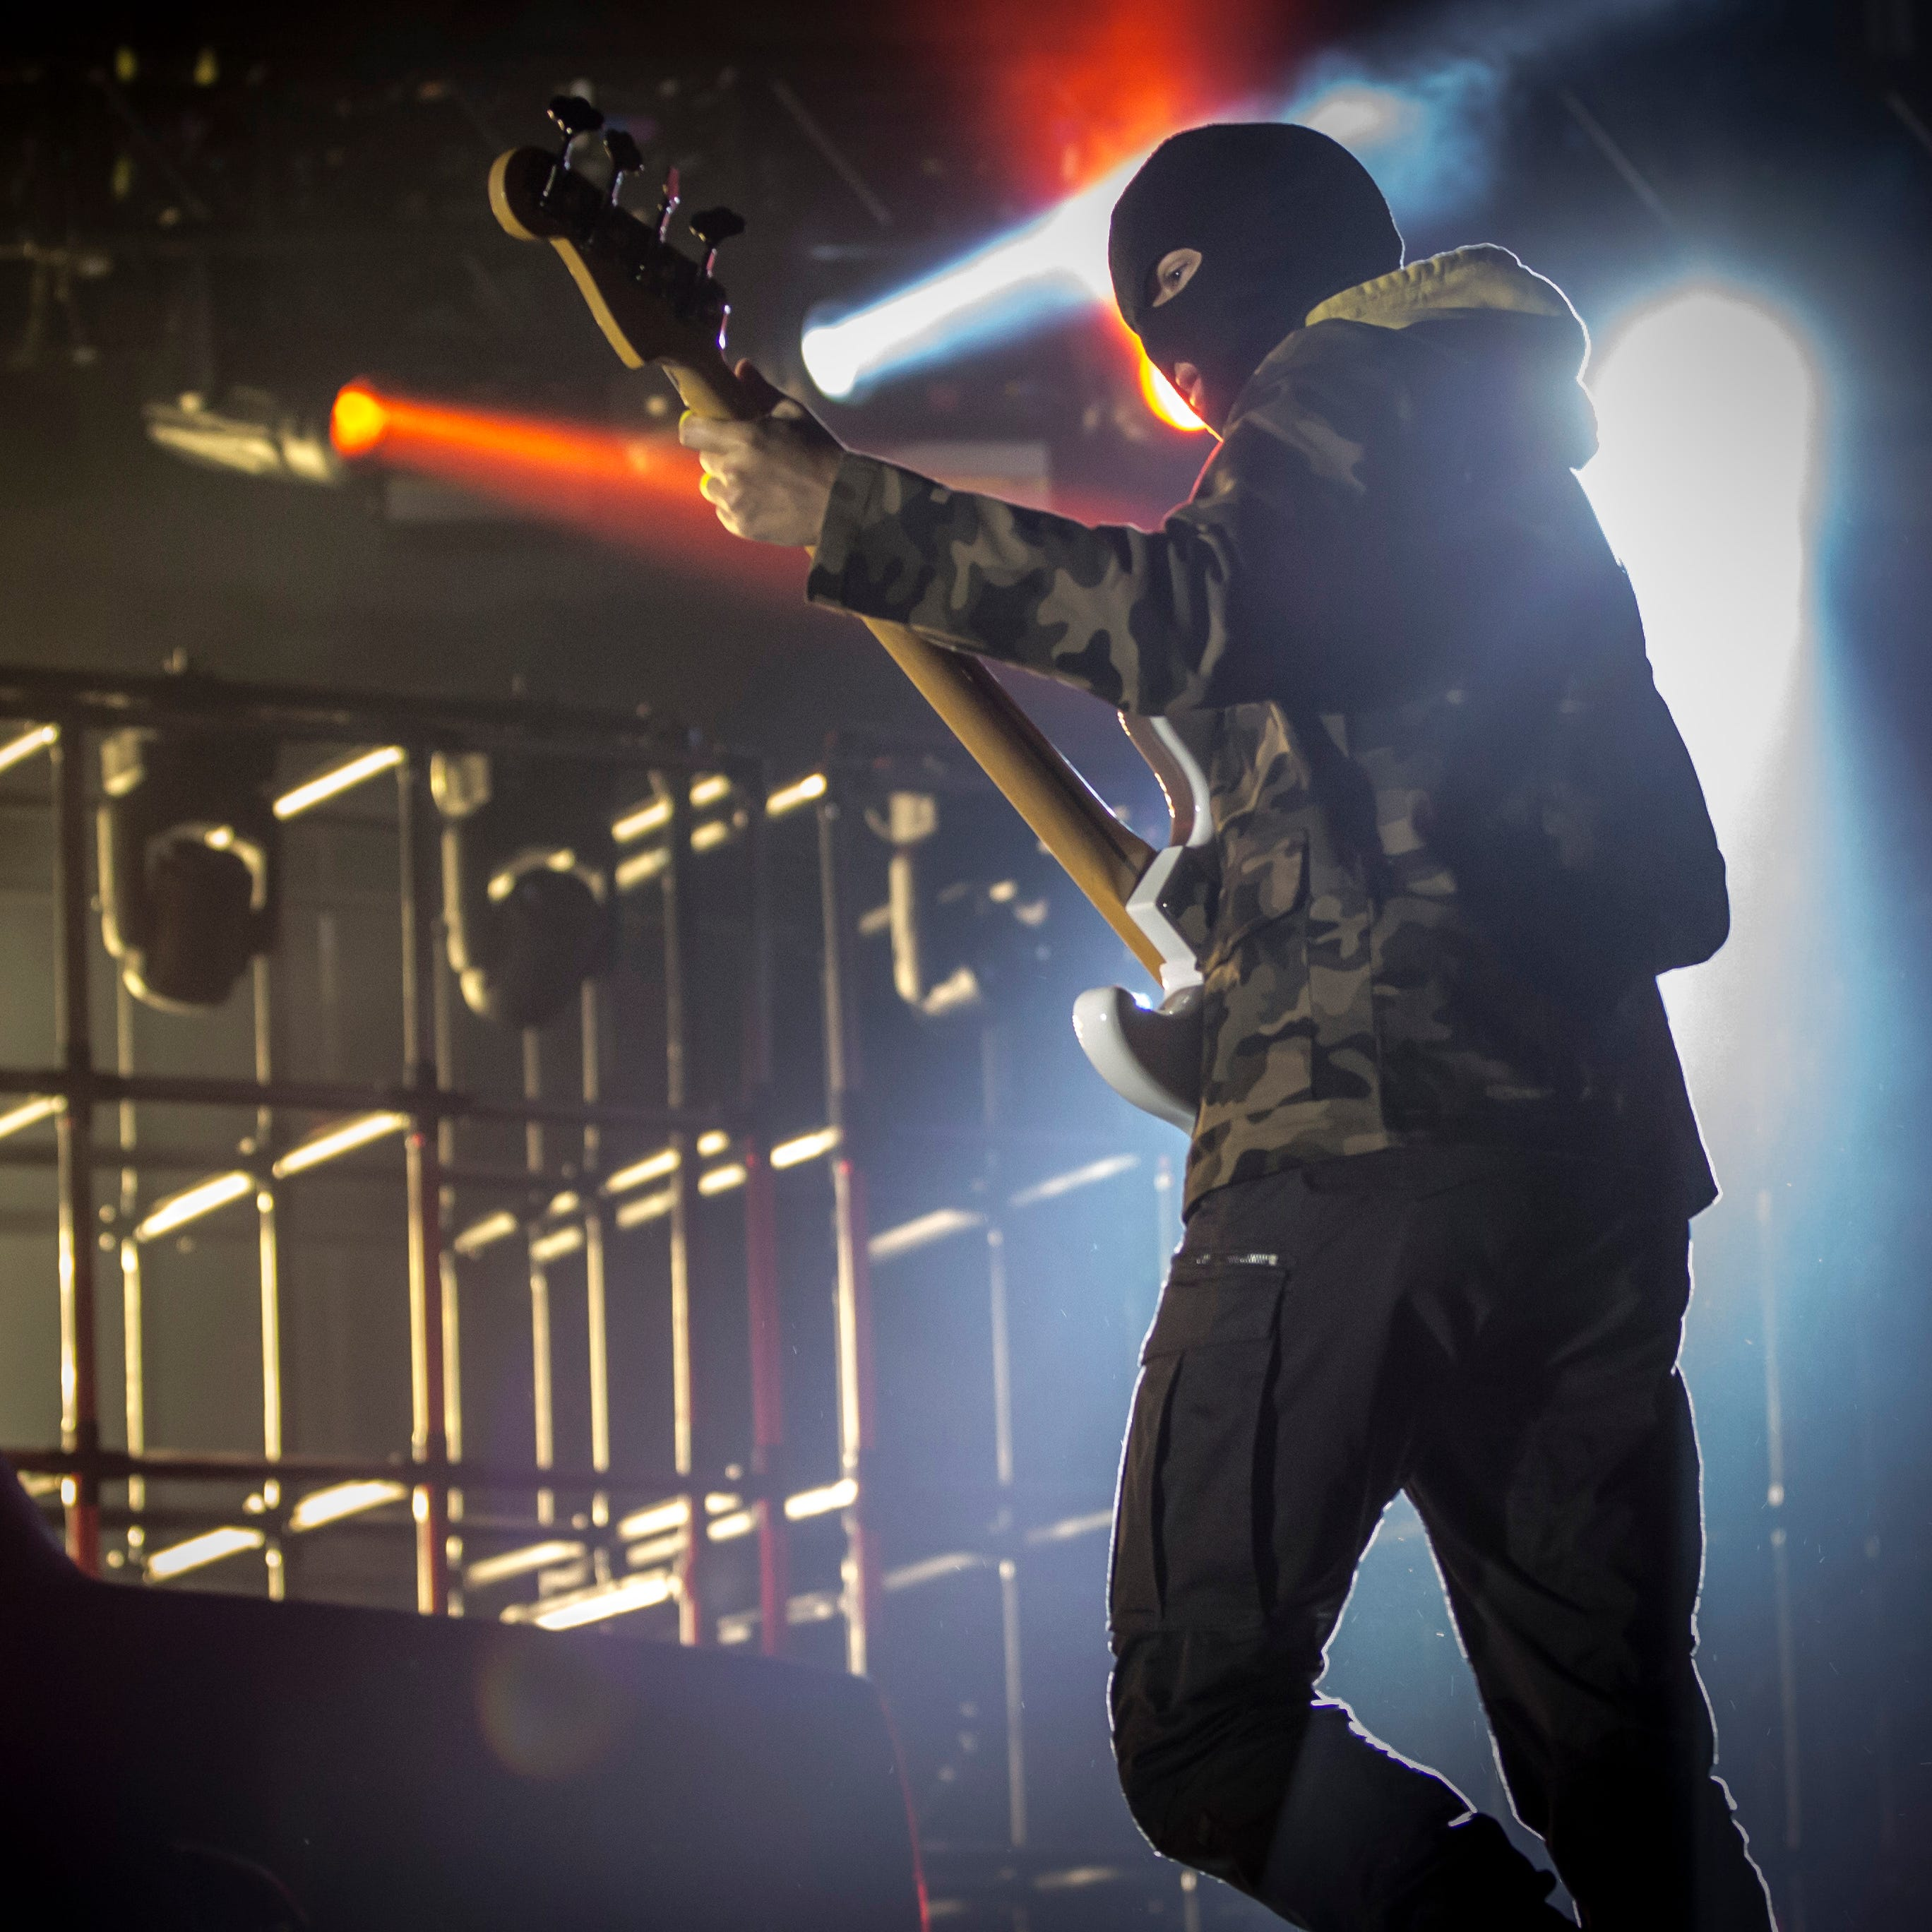 Twenty One Pilots pull out all the stops at explosive 'Bandito Tour' show in Milwaukee